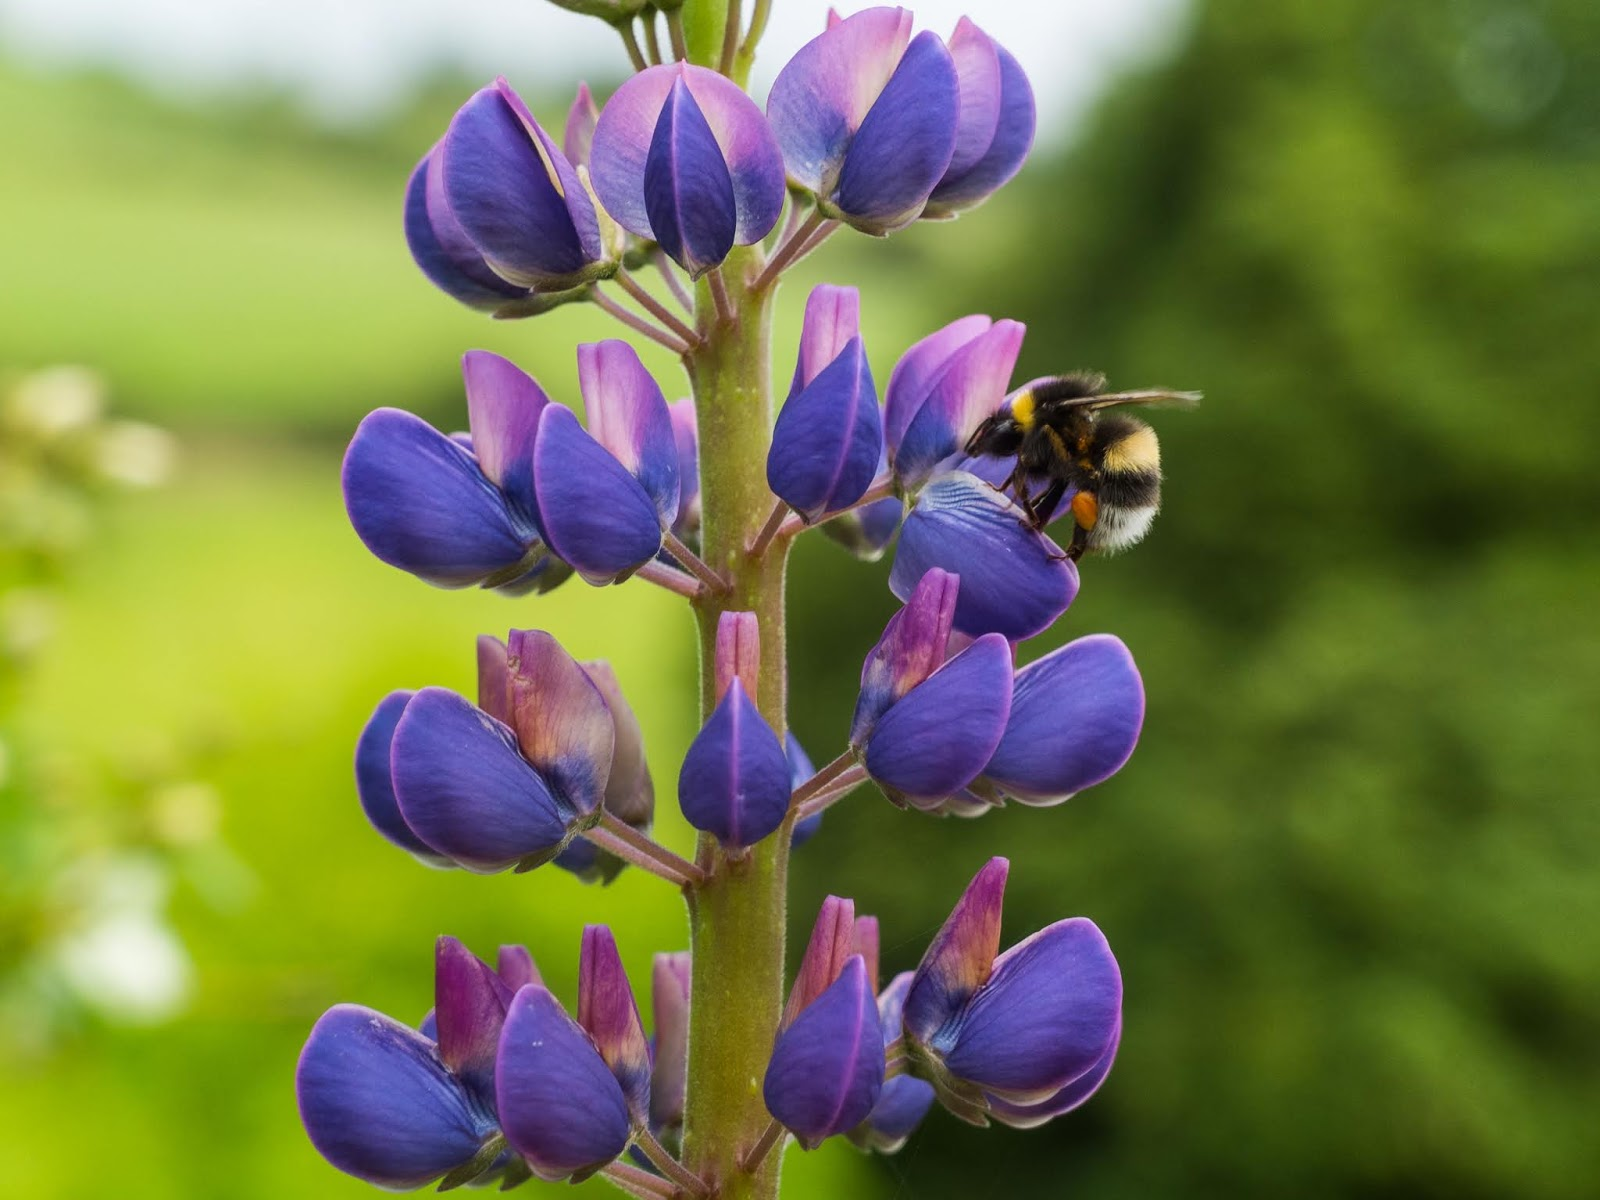 A bumble bee collecting pollen from a purple Lupine flower.